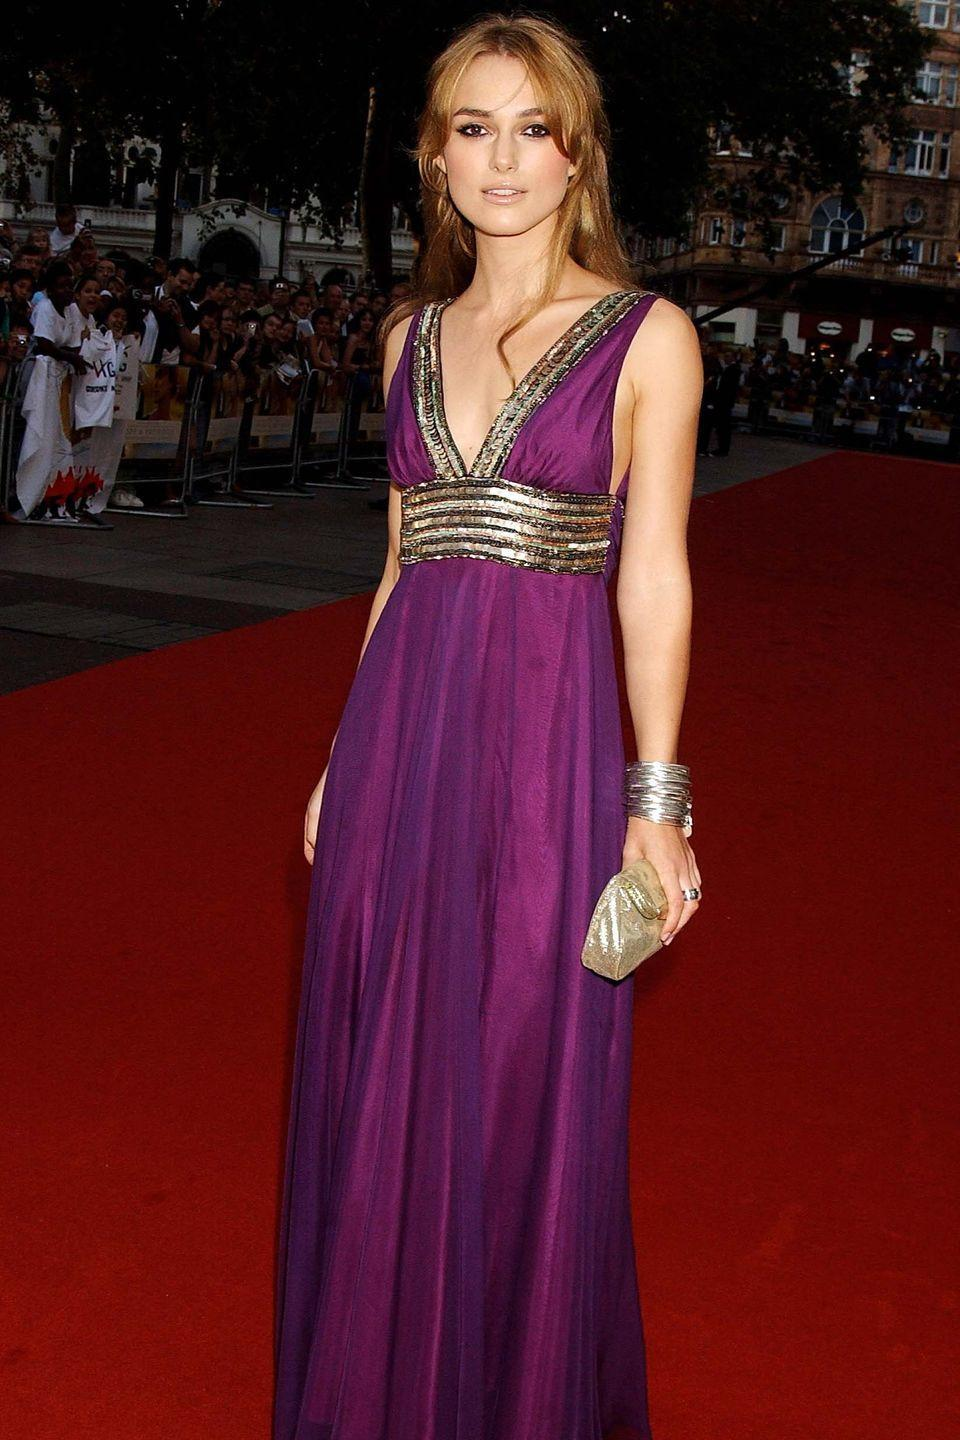 <p>The gold details and purple hue of Keira Knightley's dress she wore to the 2005 premiere of <em>Pride and Prejudice</em> make the British actress look a lot like the Greek heroine.</p>